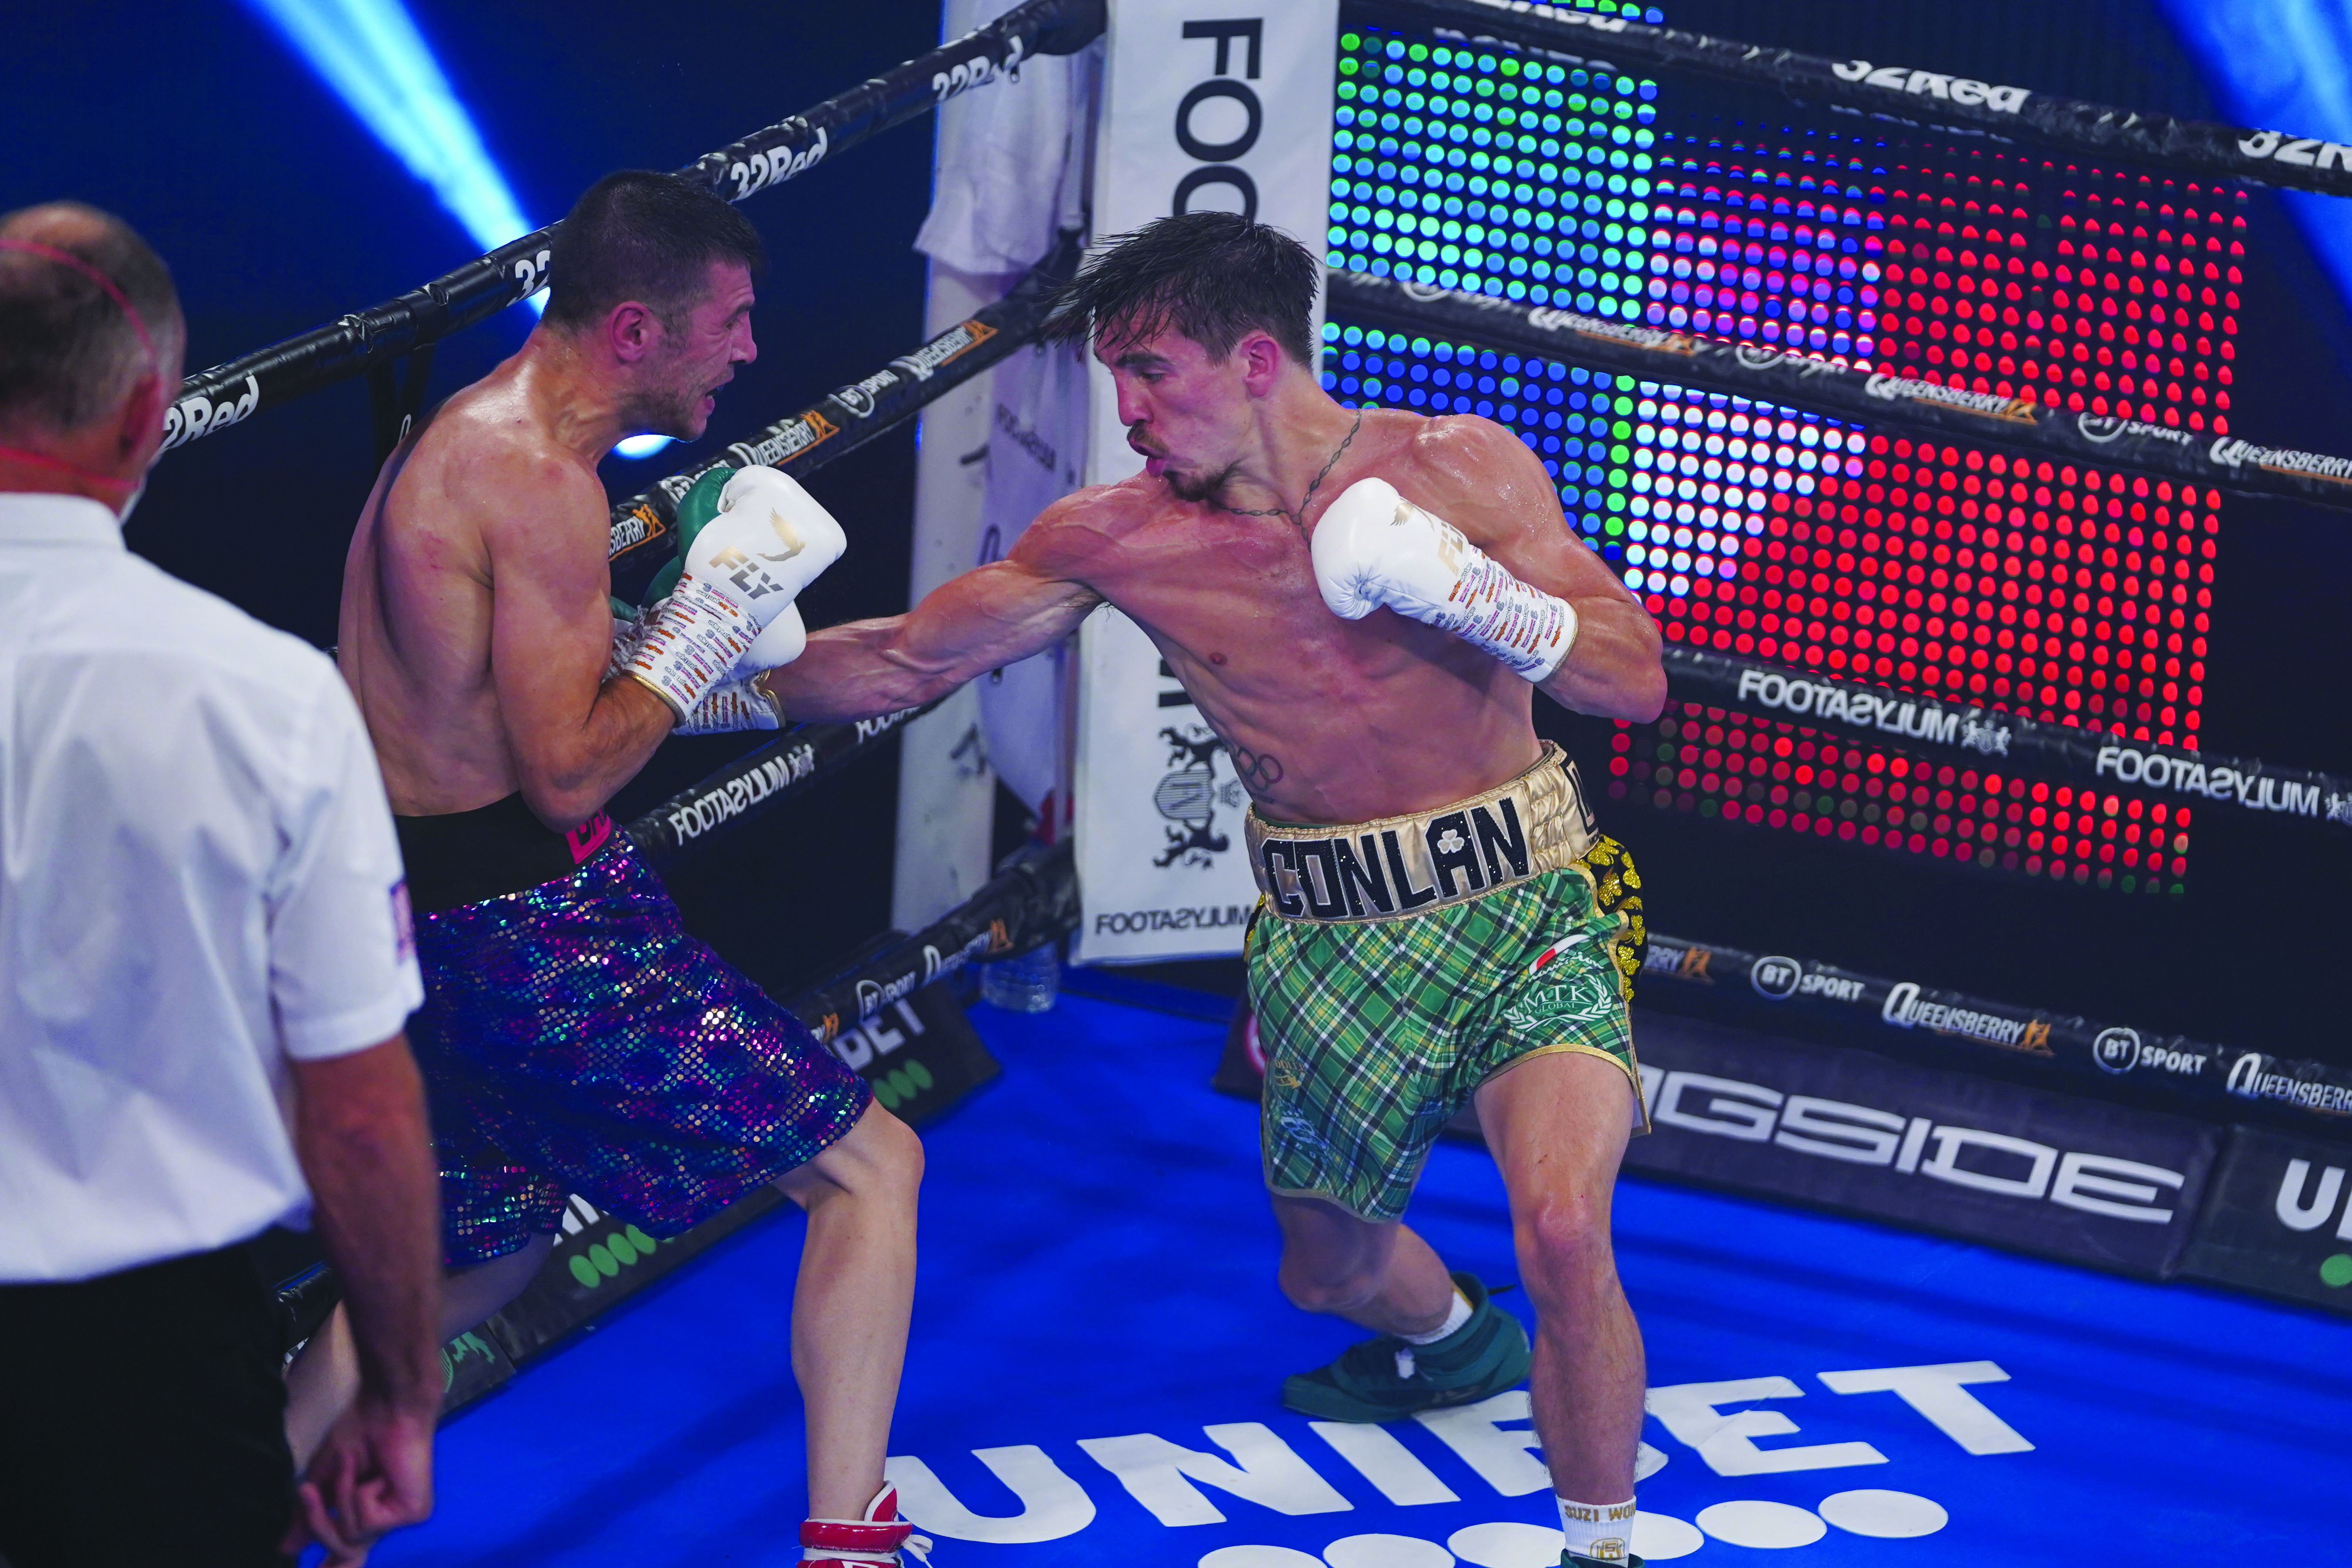 Michael Conlan impressed against Sofiane Takoucht last time out